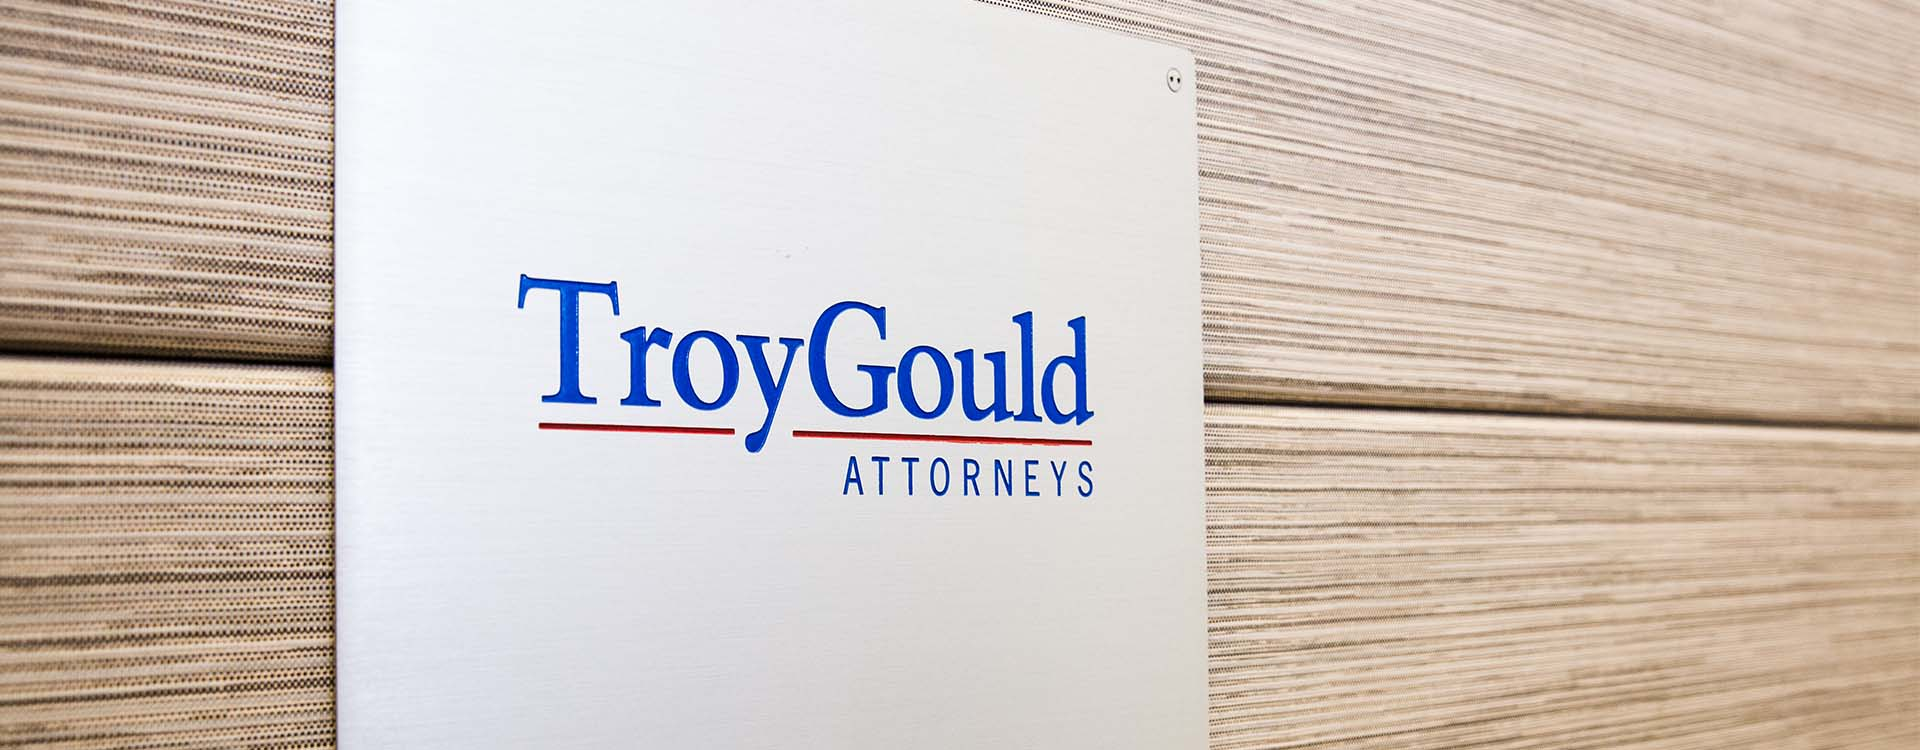 TroyGould Attorneys Sign